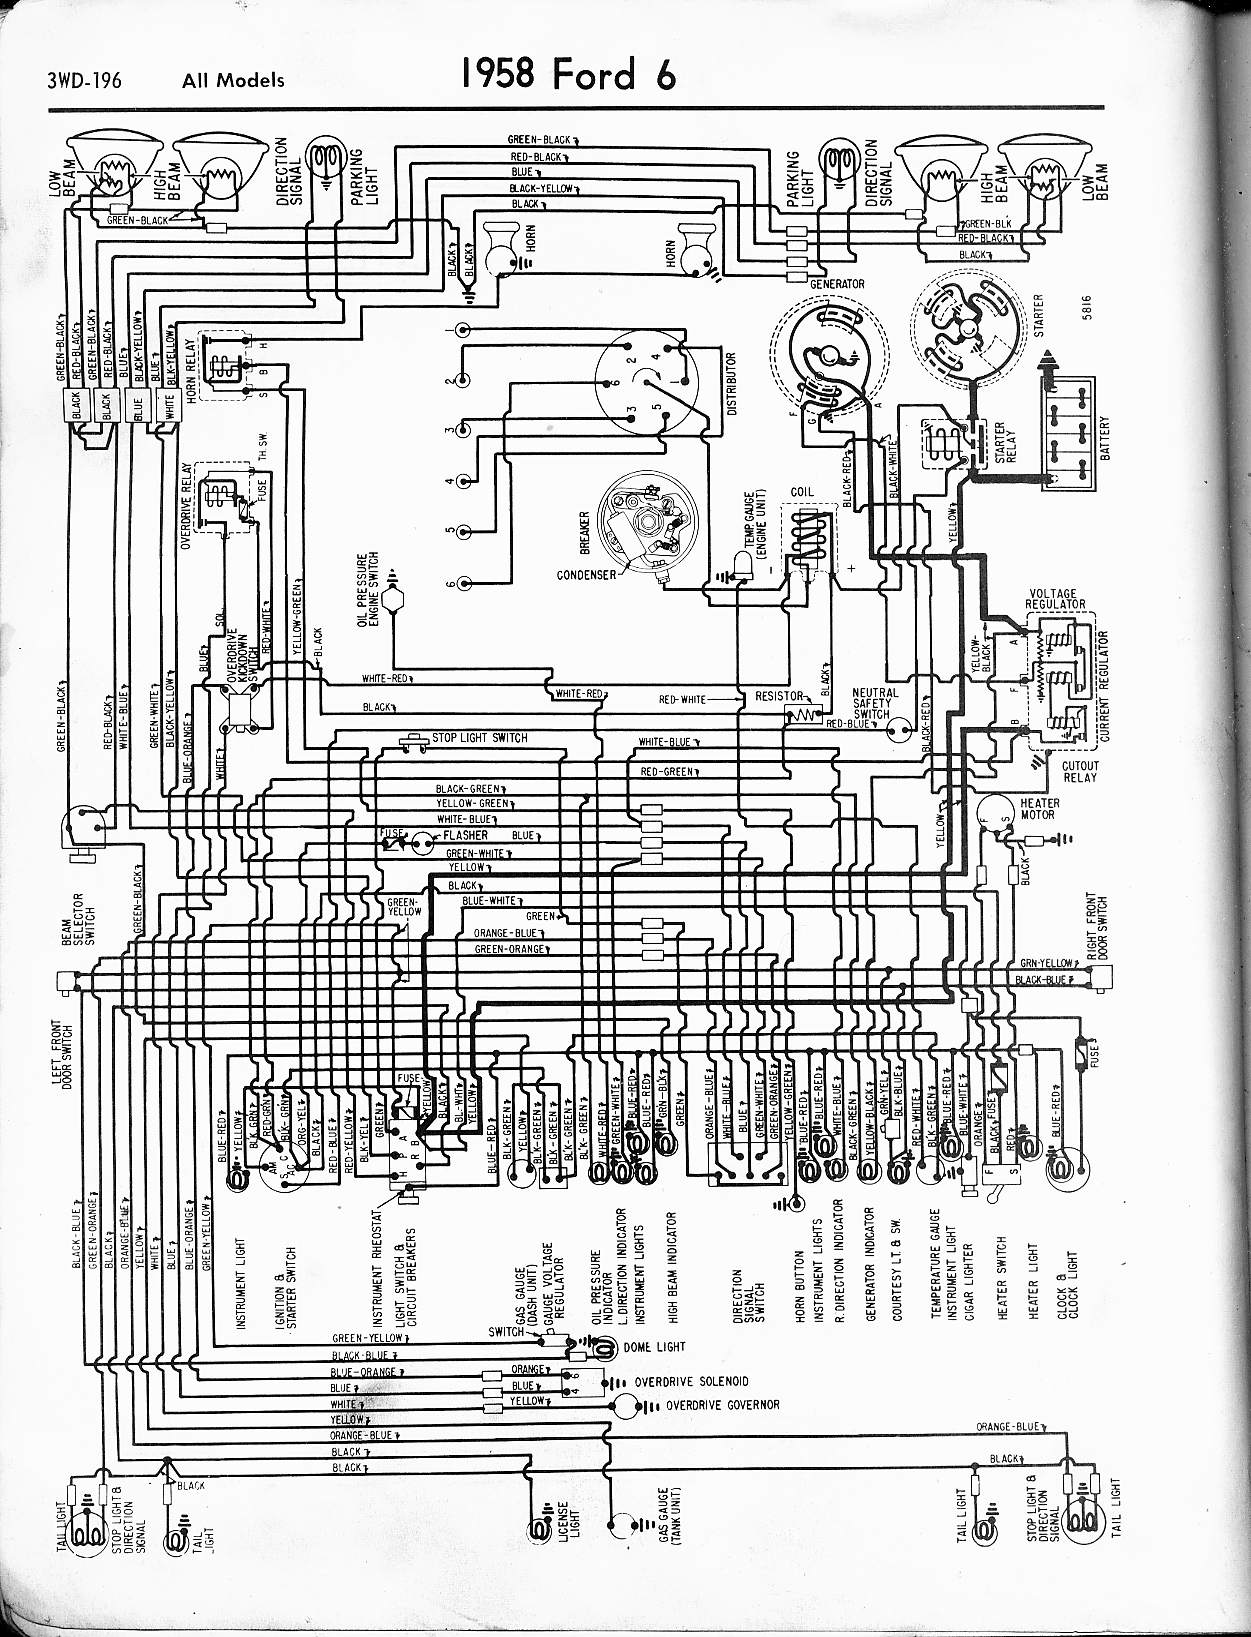 Sensational Ford 50 Wiring Harness Basic Electronics Wiring Diagram Wiring 101 Eattedownsetwise Assnl